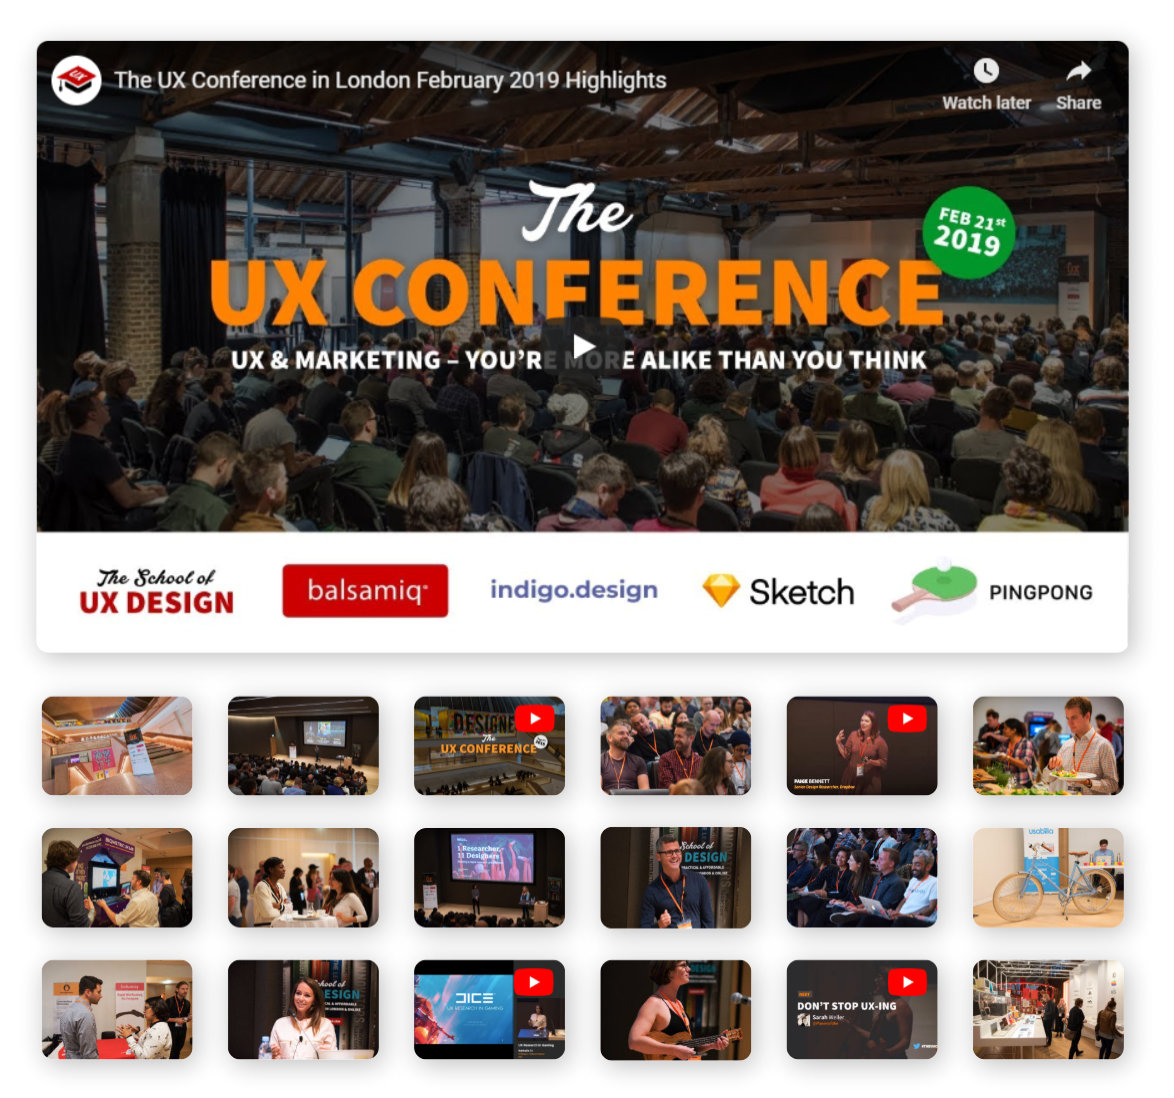 The UX Conference photos and videos